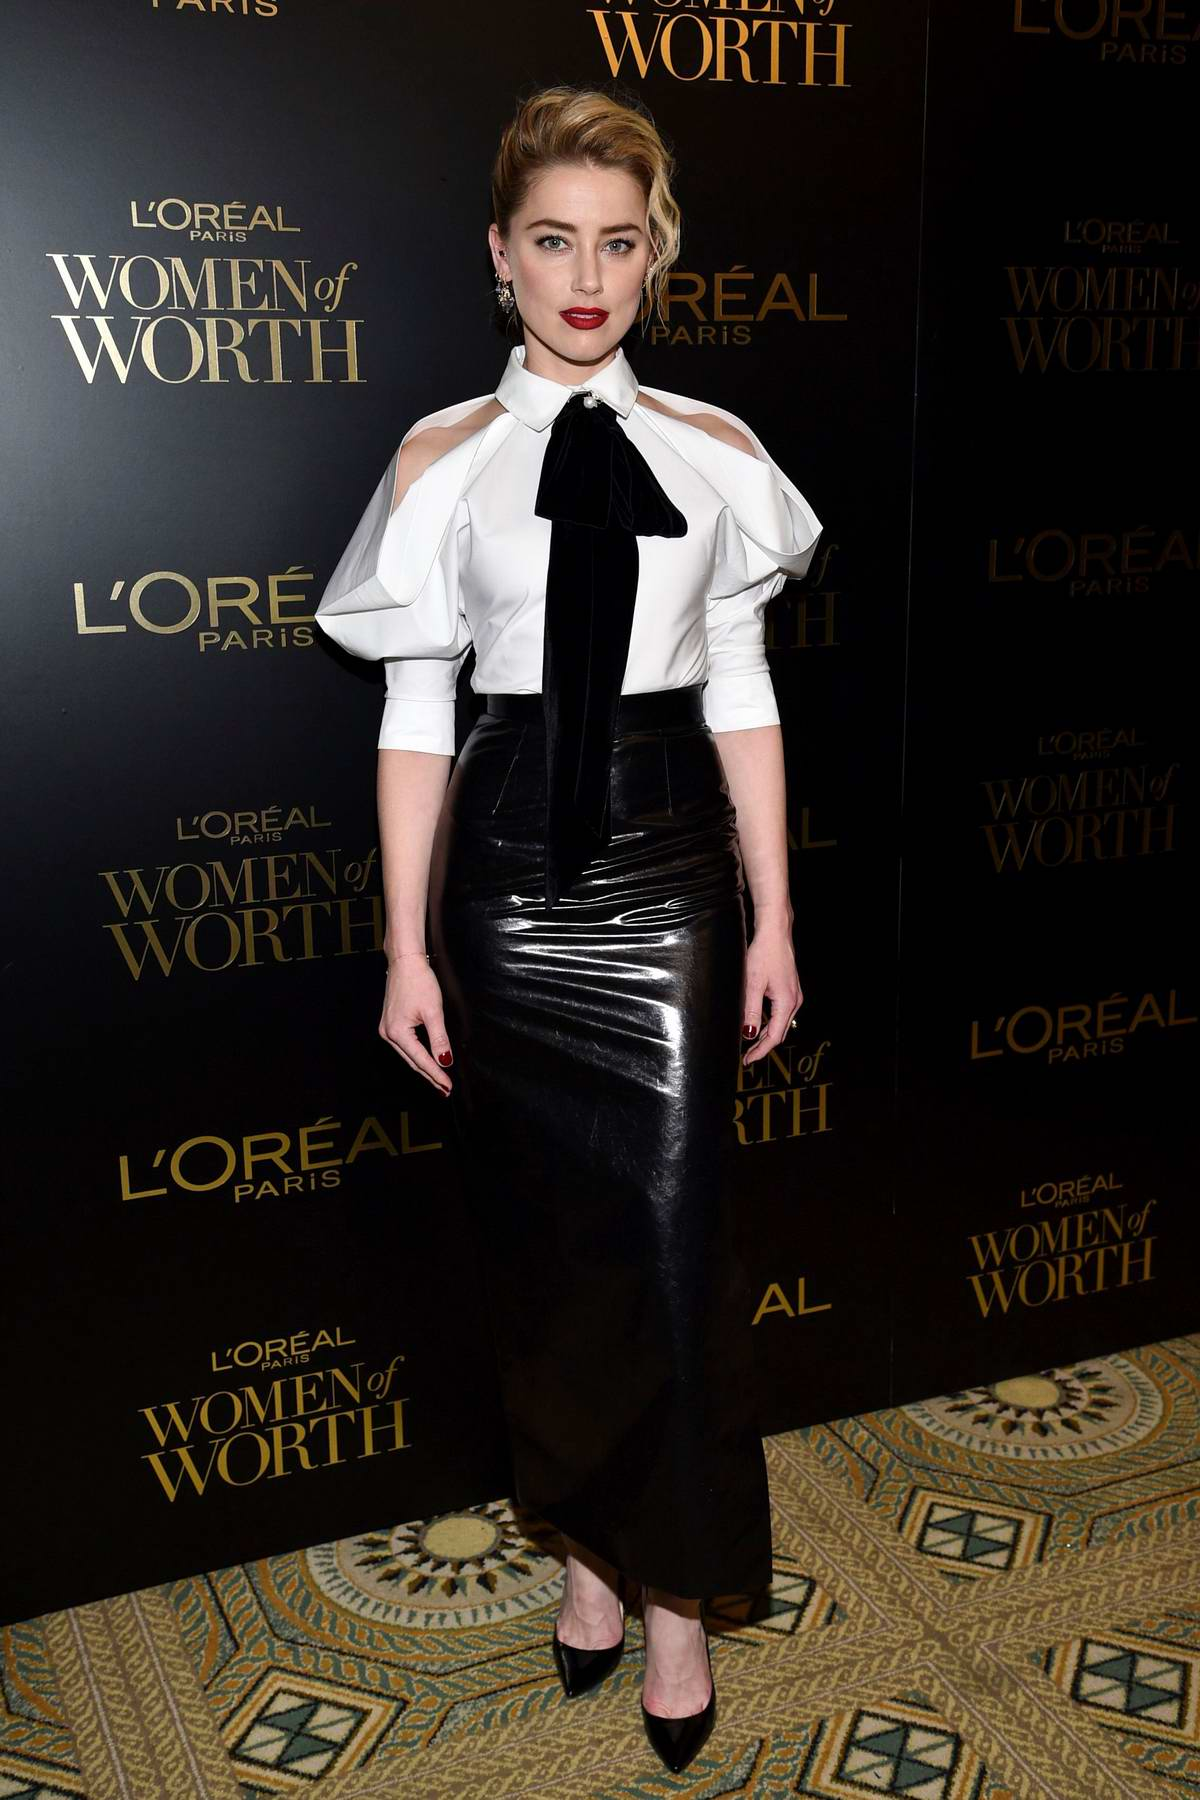 Amber Heard attends the 14th Annual L'Oreal Paris Women Of Worth Awards in New York City